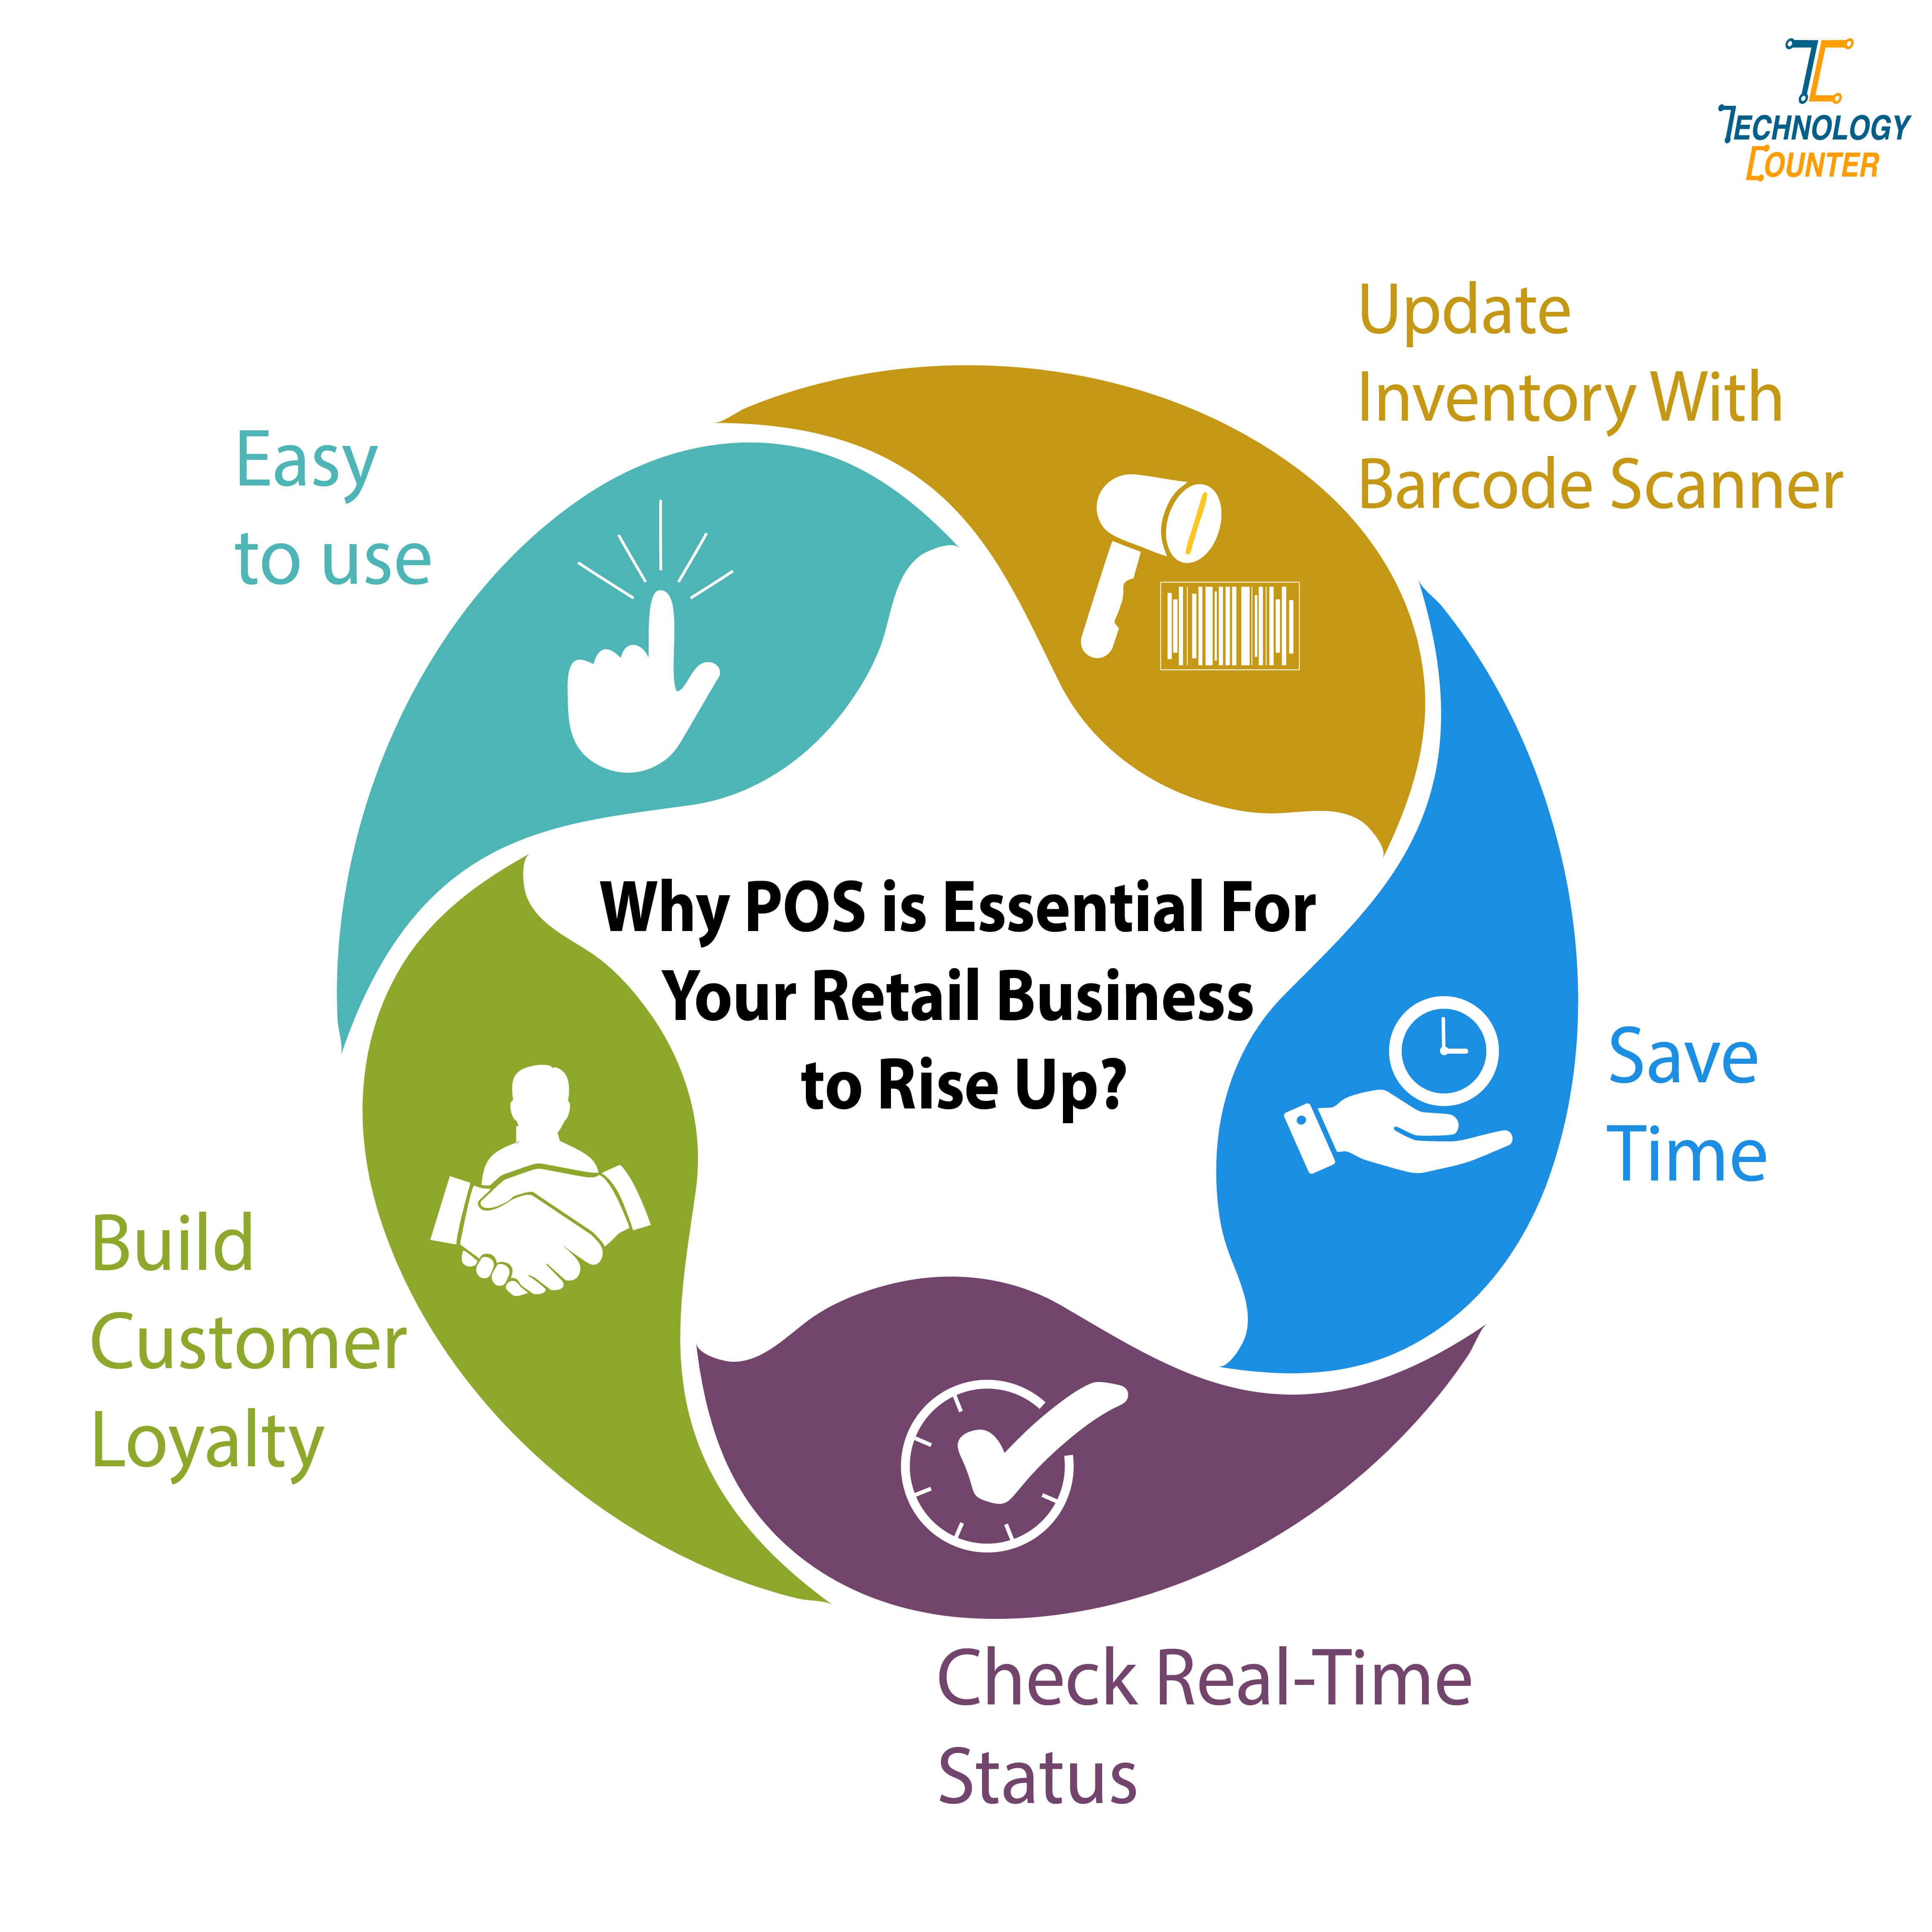 Why POS is Essential for retail business